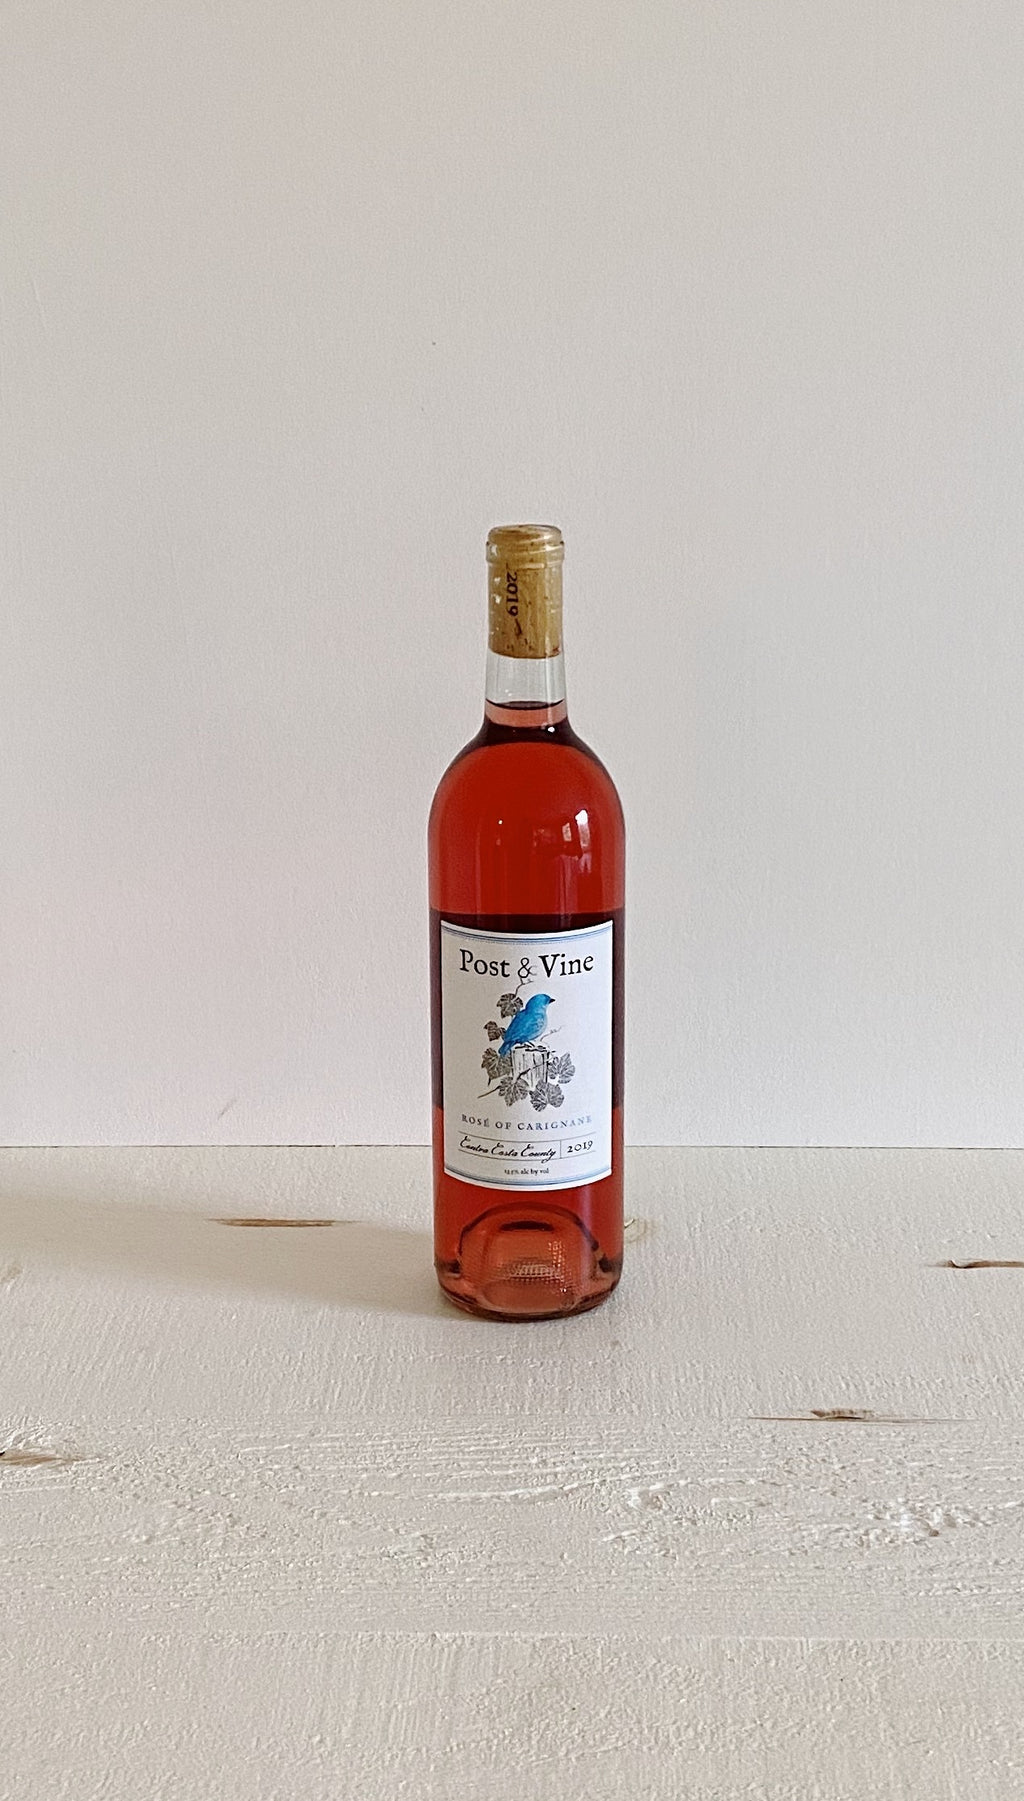 Post & Vine Rosé of Carignane